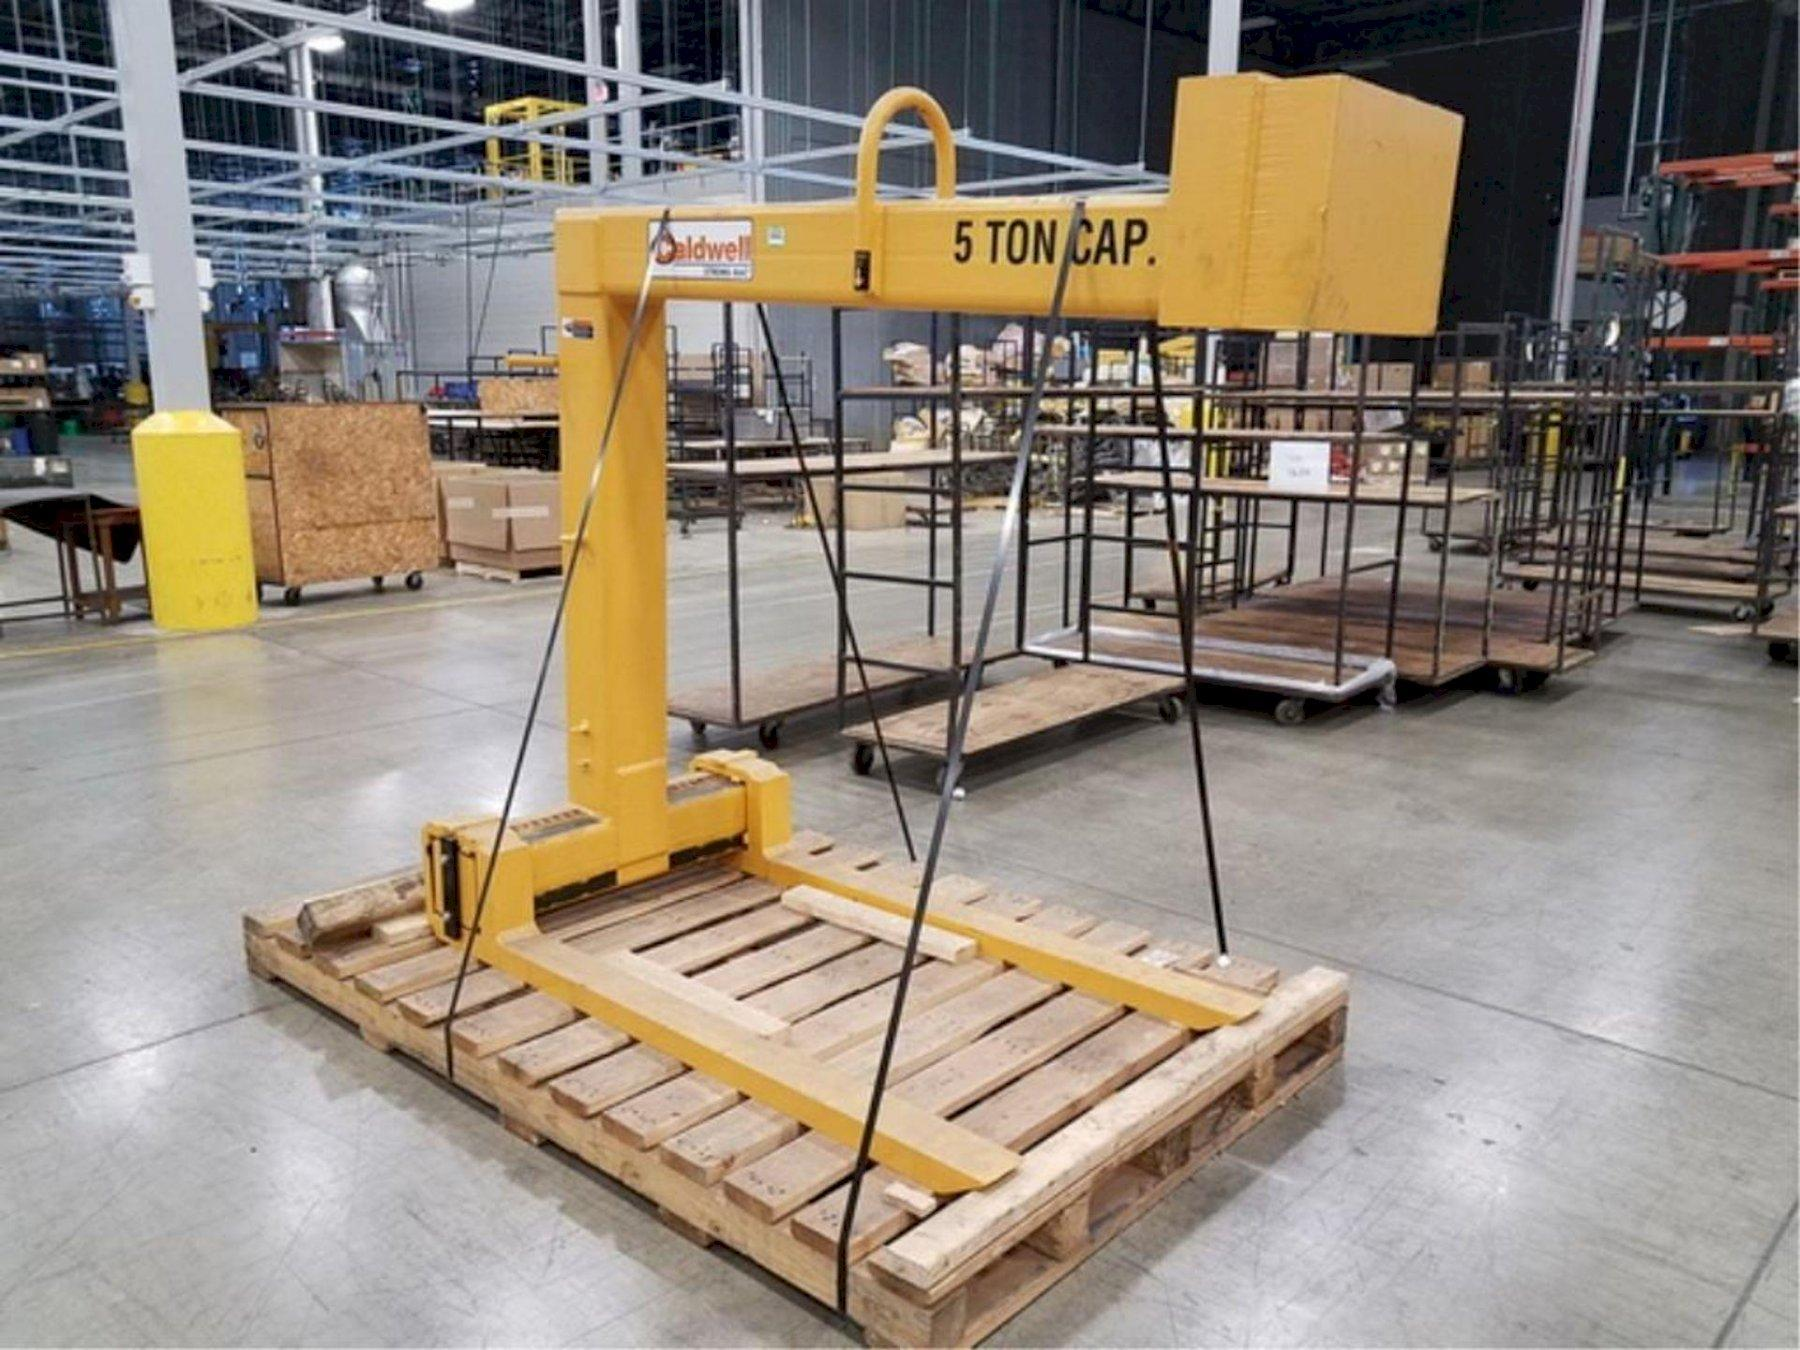 NEW Caldwell Model# 91-5-60 Standard Adjustable Forks Pallet Lifter 5-Ton Capacity